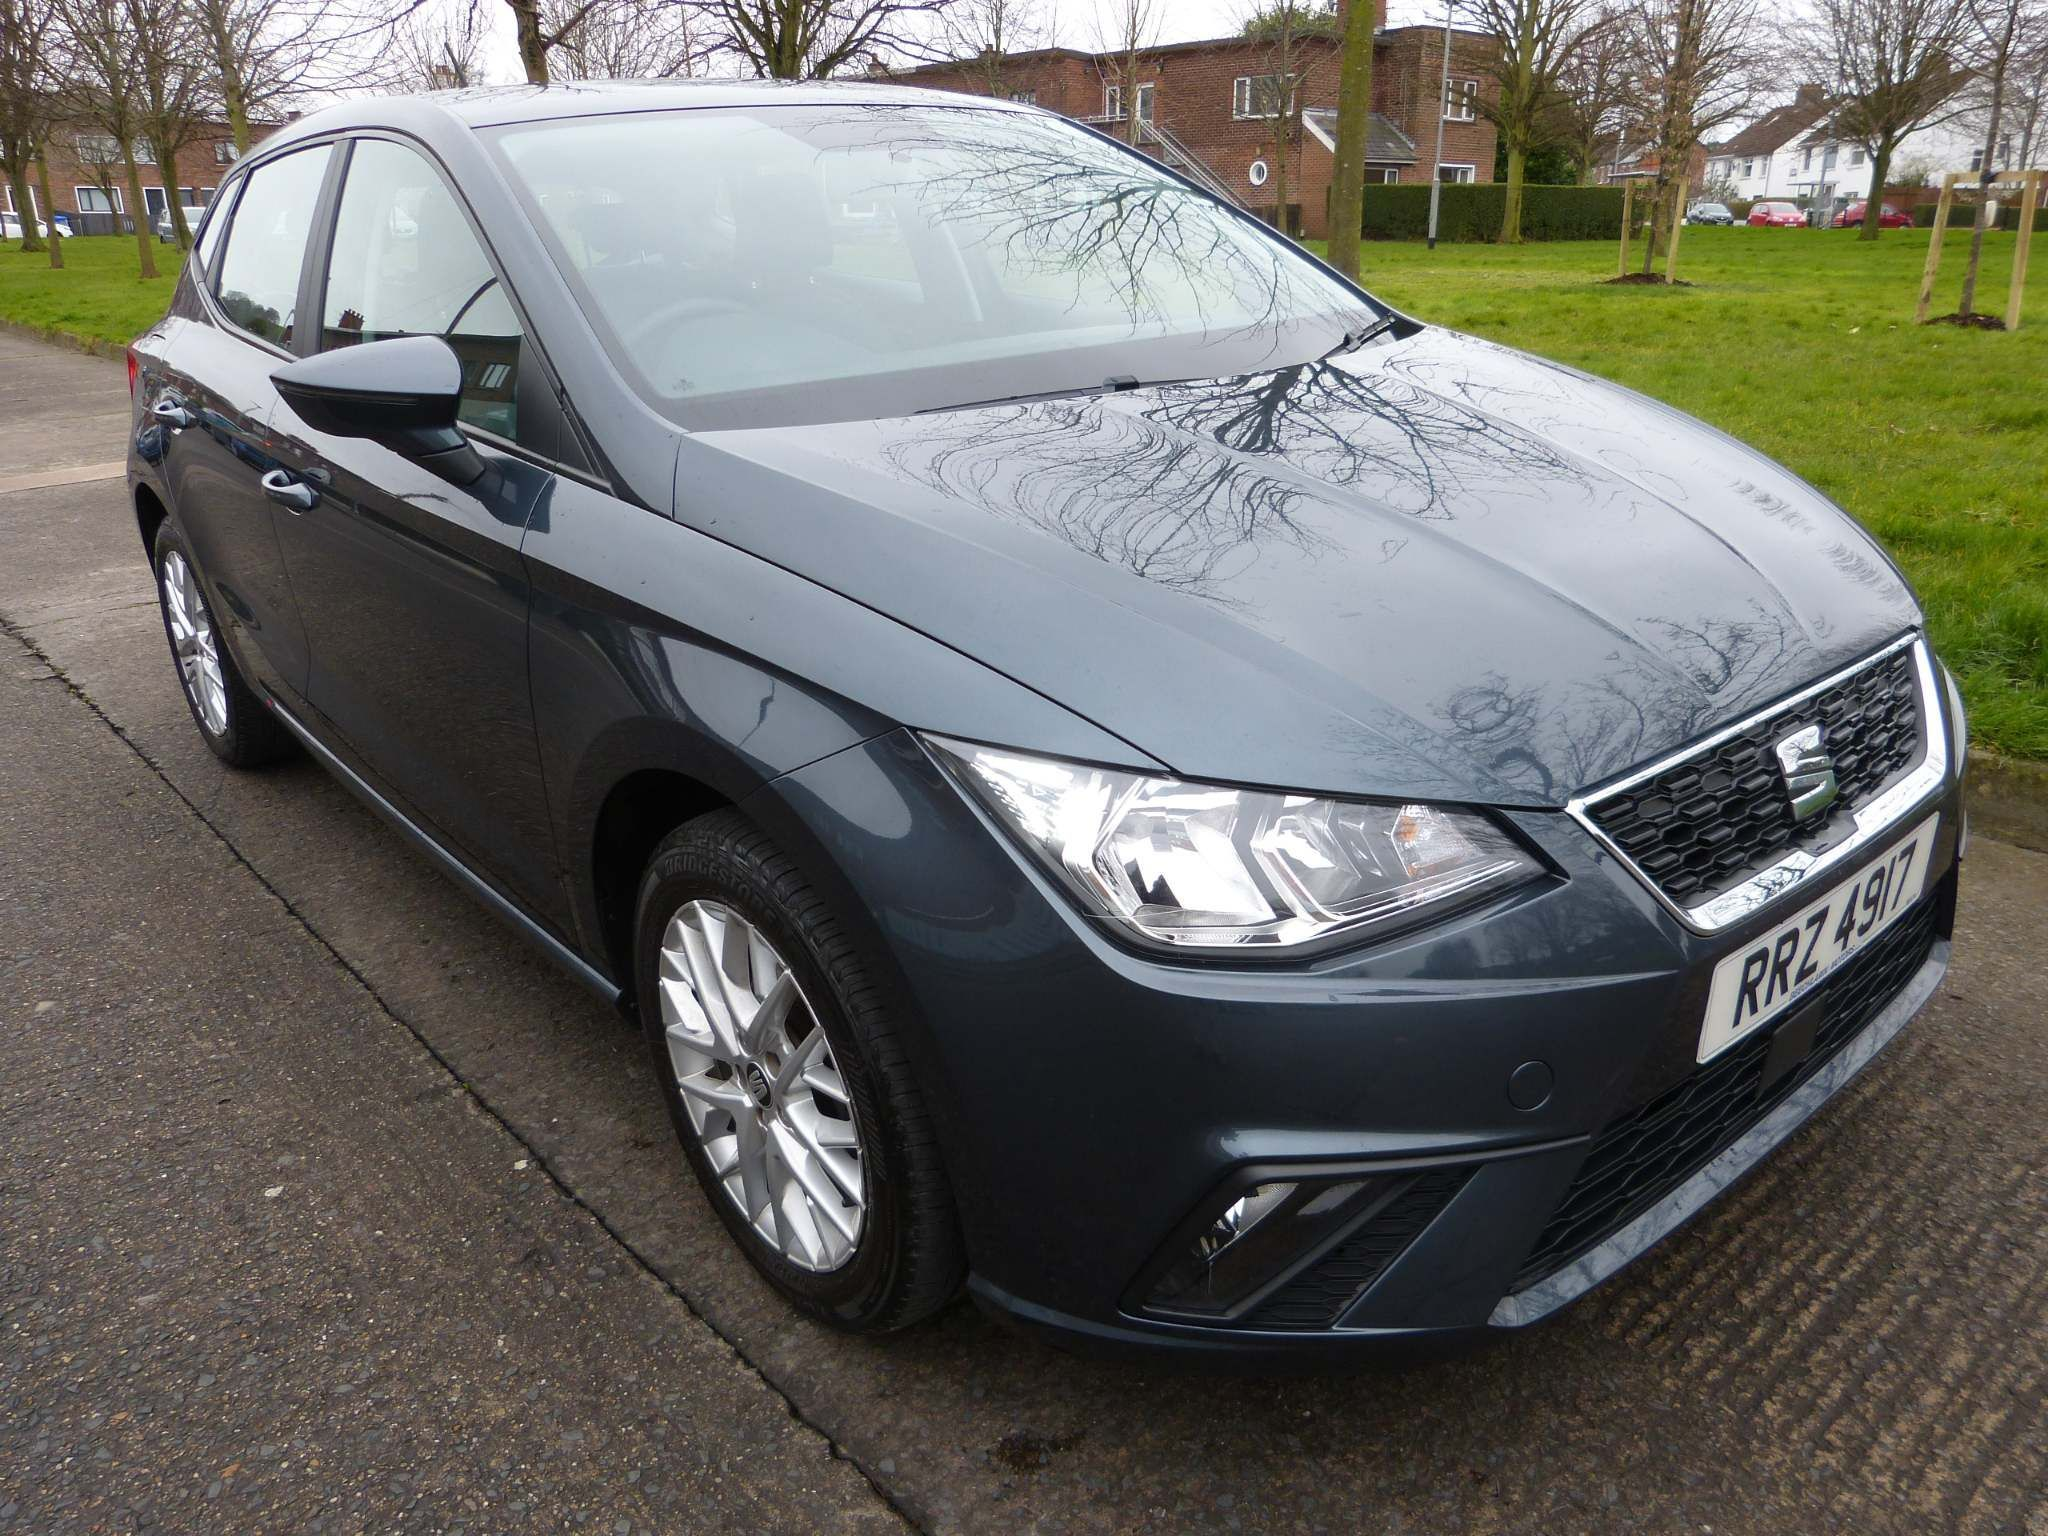 2019 SEAT Ibiza 1.0 MPI SE Technology (s/s)  GPF Petrol Manual excellent condition – Beechlawn Motors Belfast